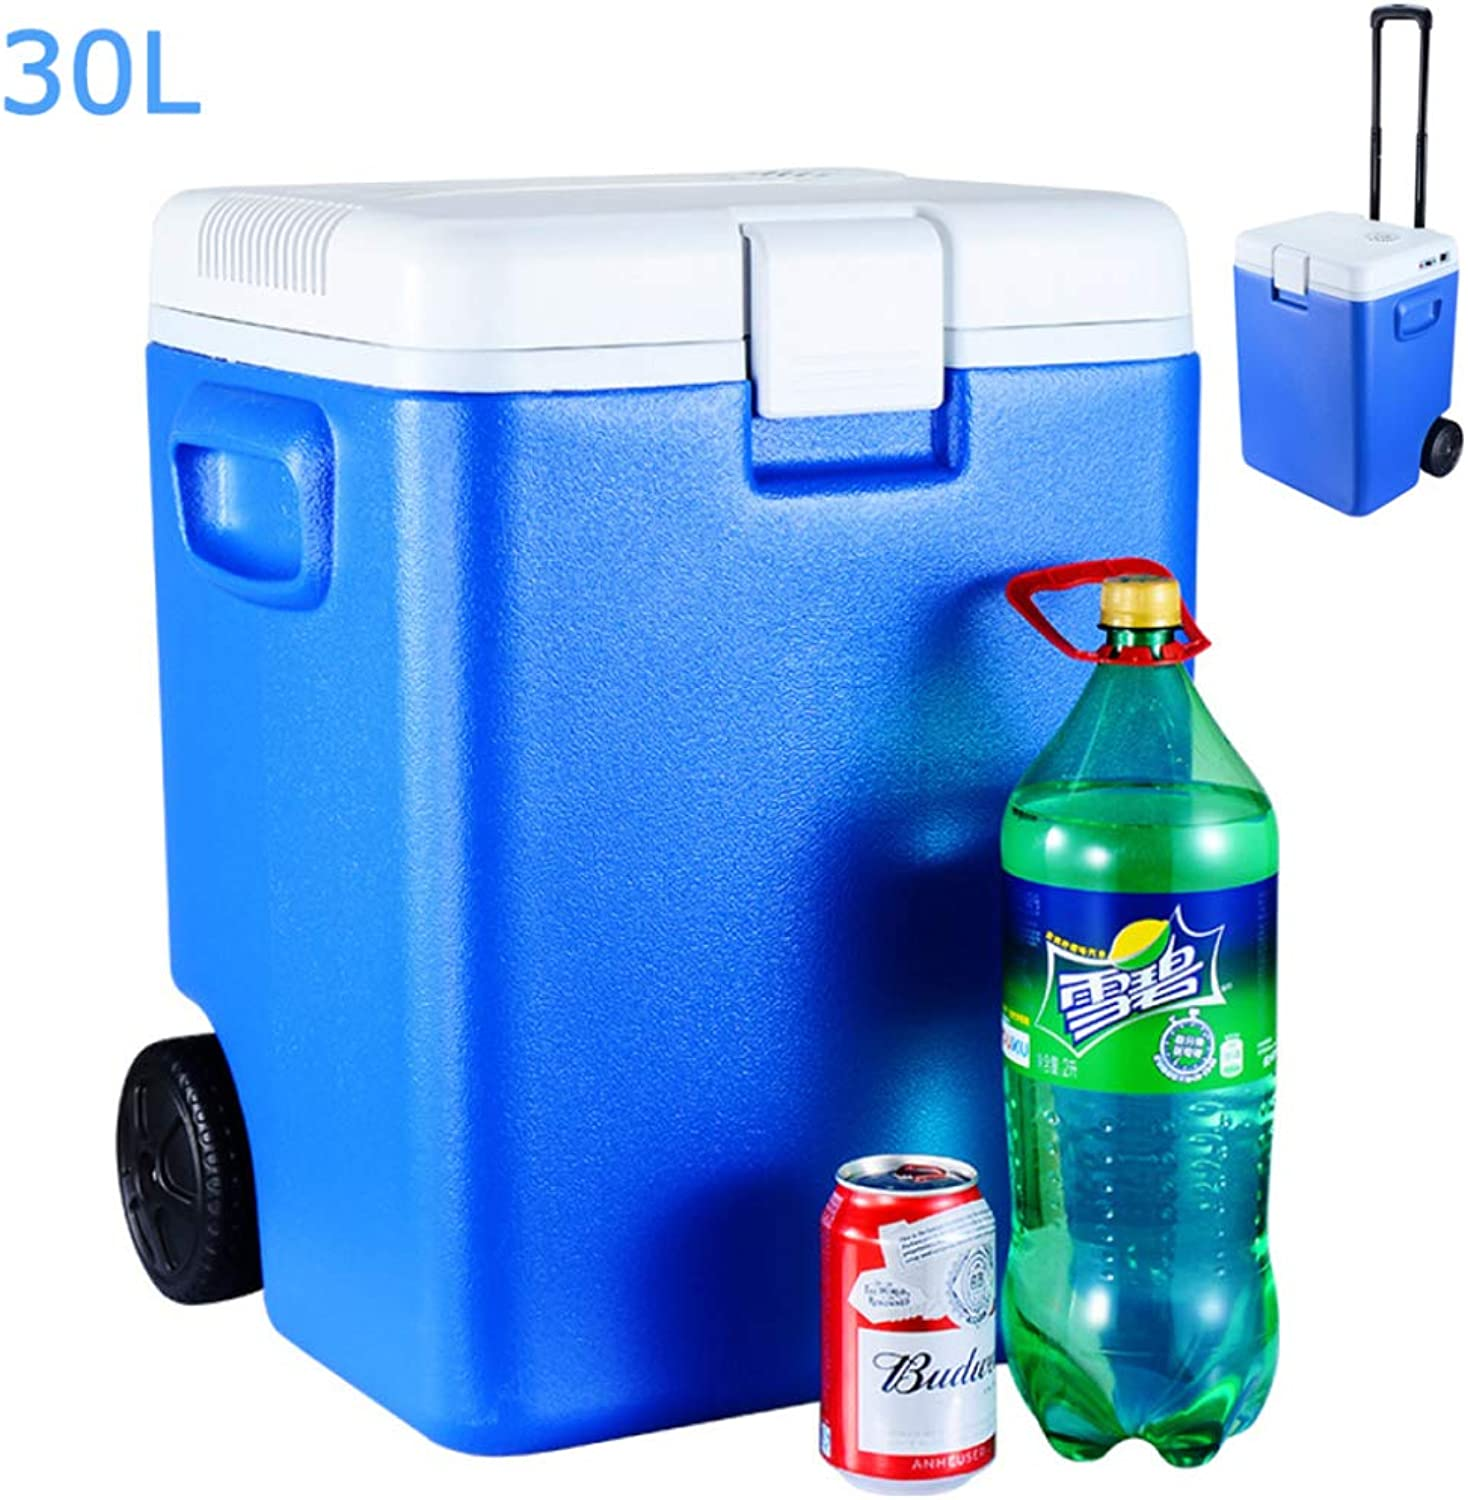 Thermoelectric Cool Box Camping Fridge 12V (30L) Car Cooler Car Refrigerator blueee for Travel Camping Picnics